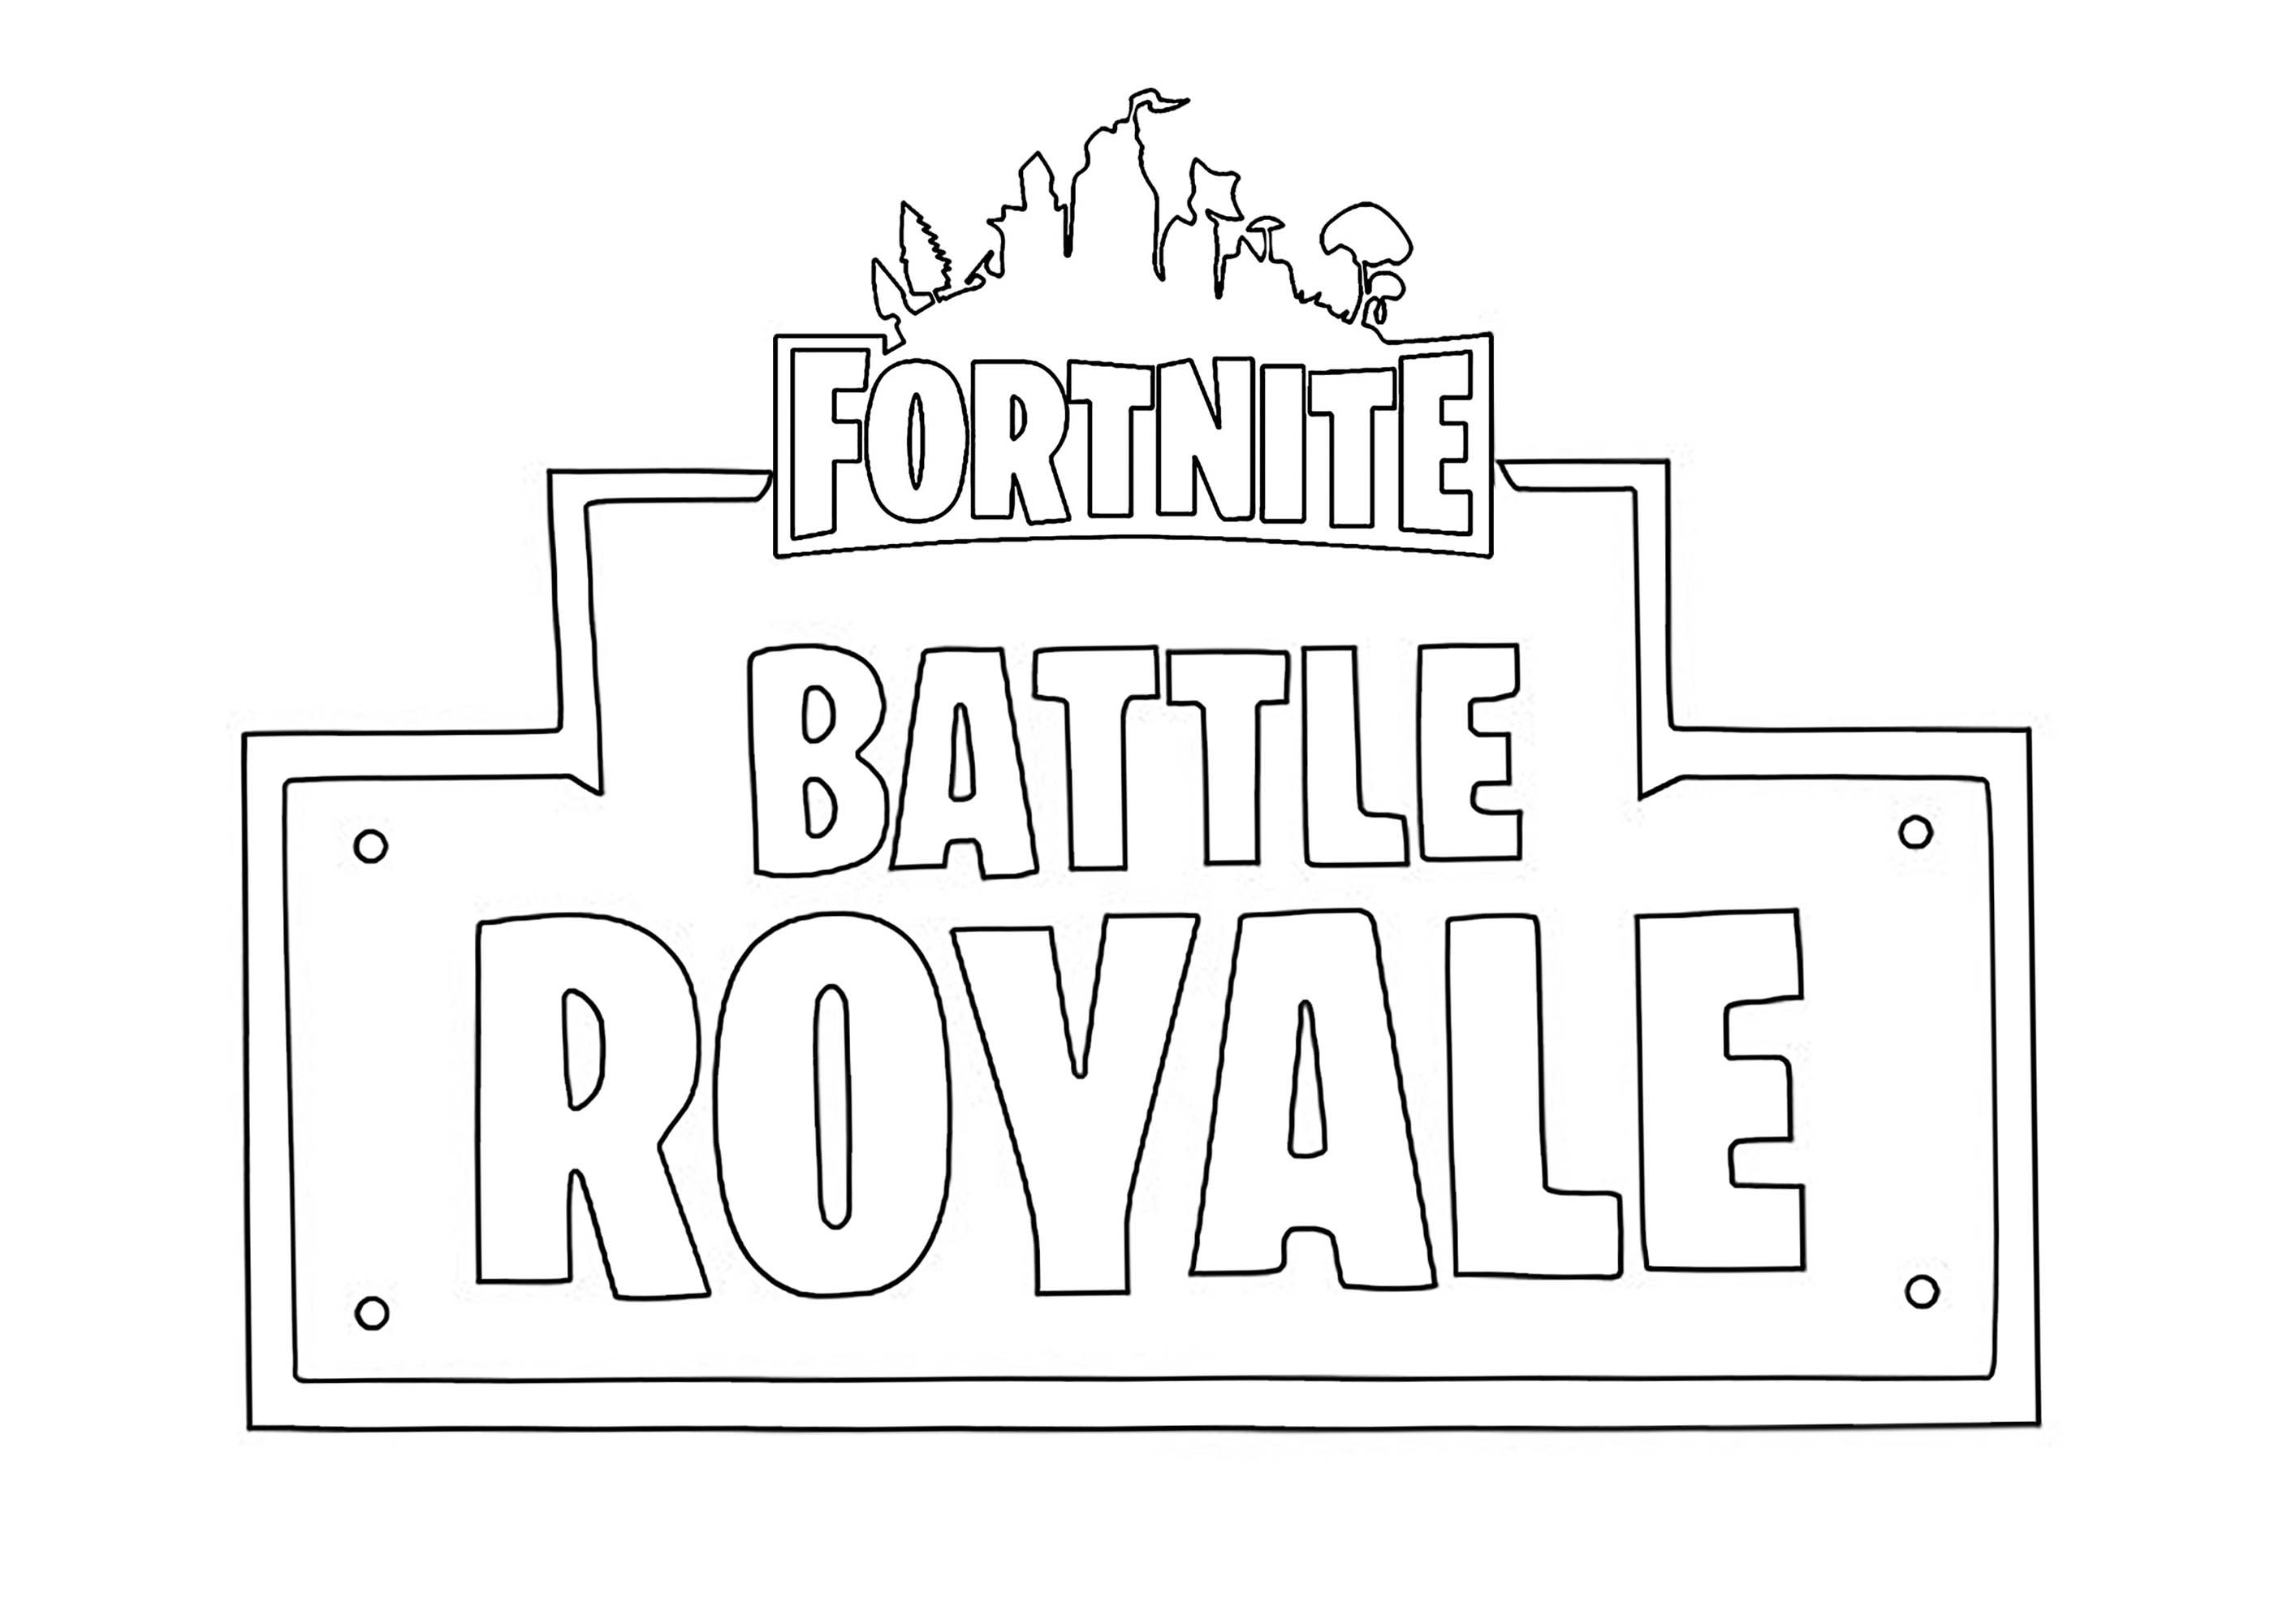 Fortnite Battle Royale Kids Coloring Coloring Pages Coloring Pages For Boys Colouring Pages